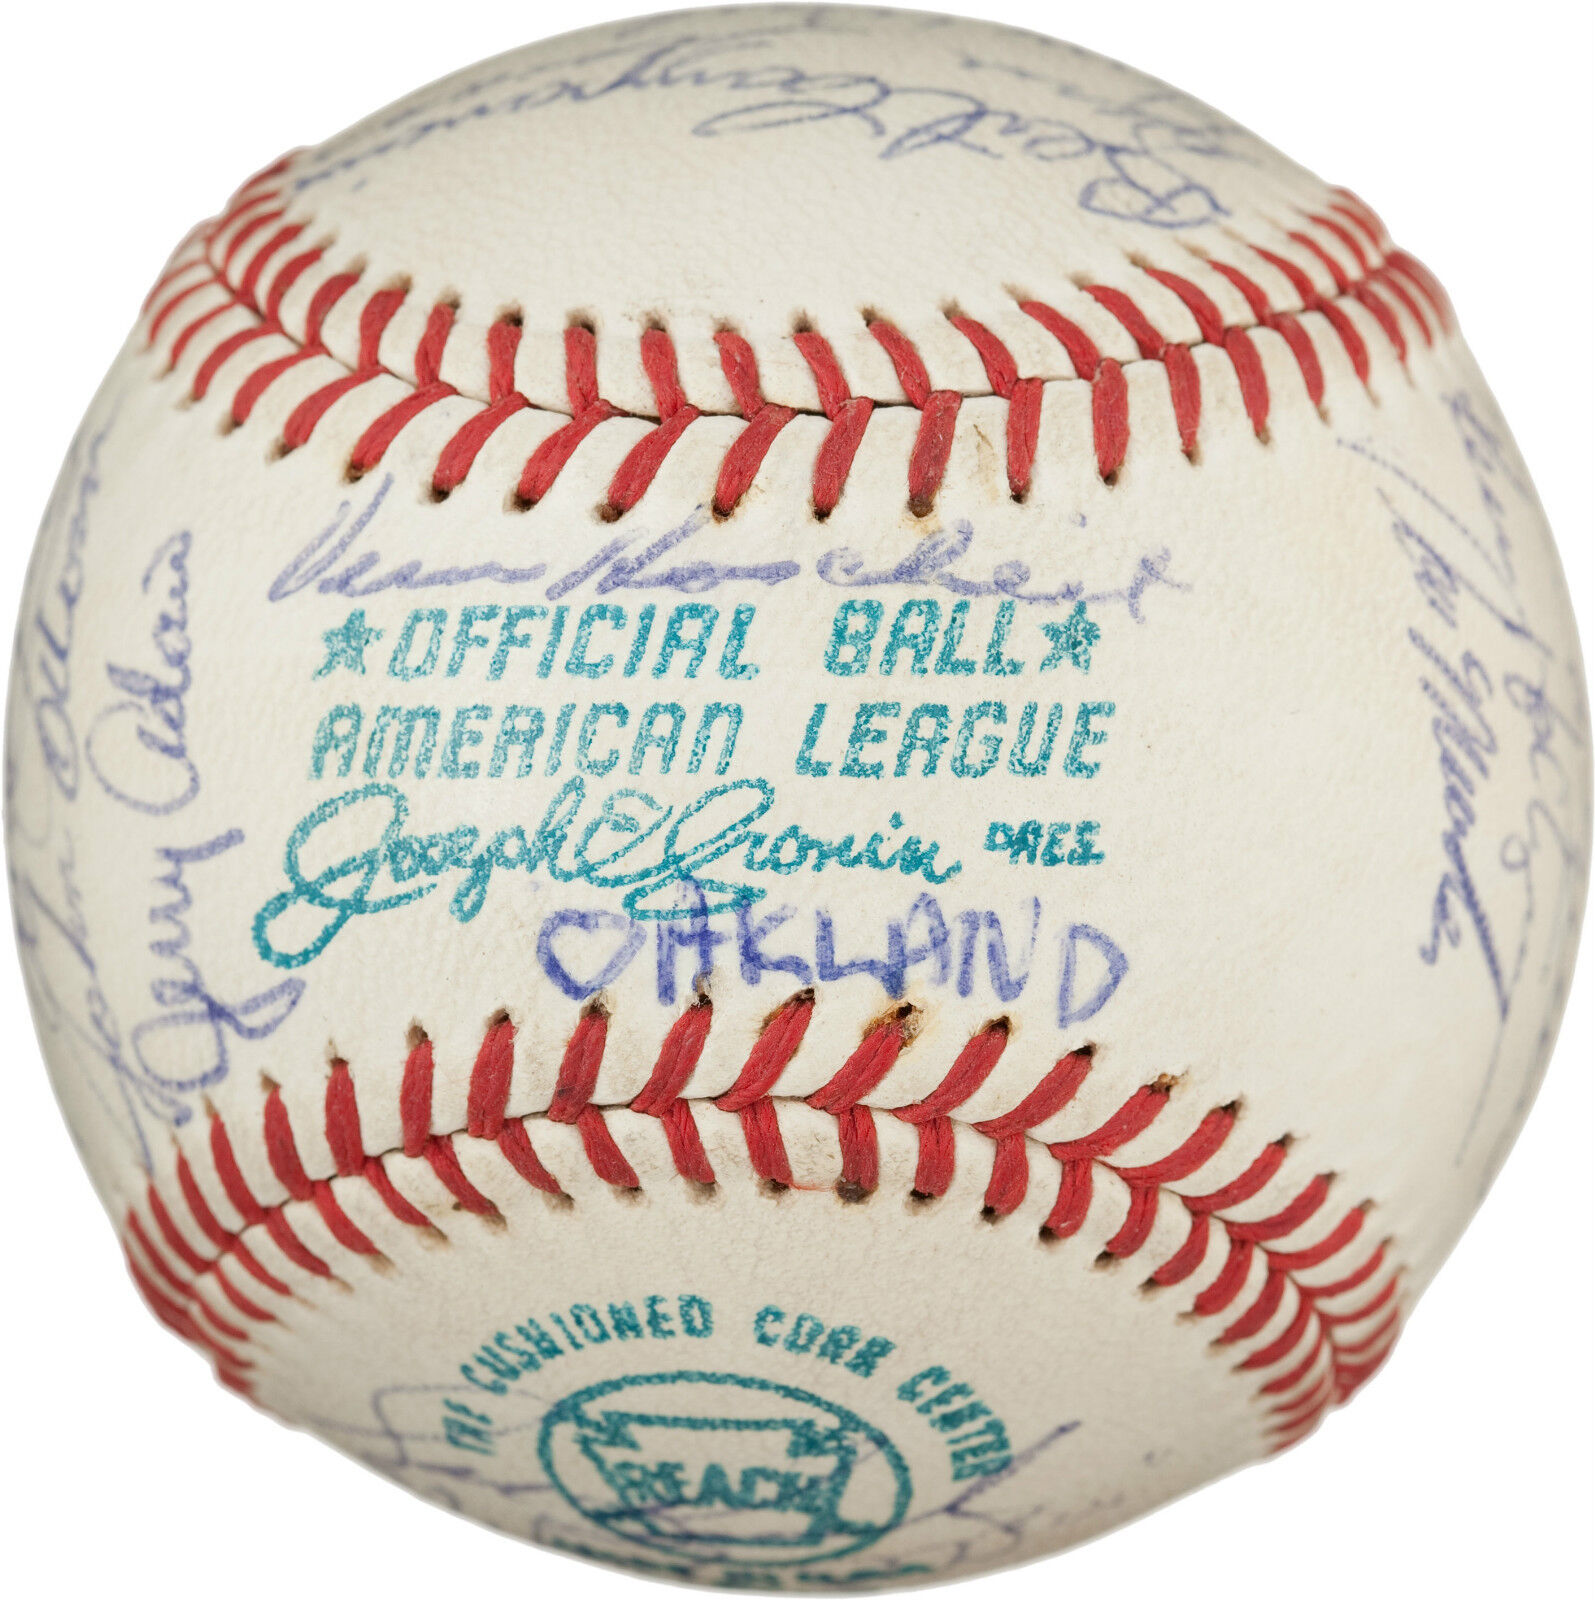 1972 Oakland Athletics Autographed Baseball - 24 Signatures - World Series!